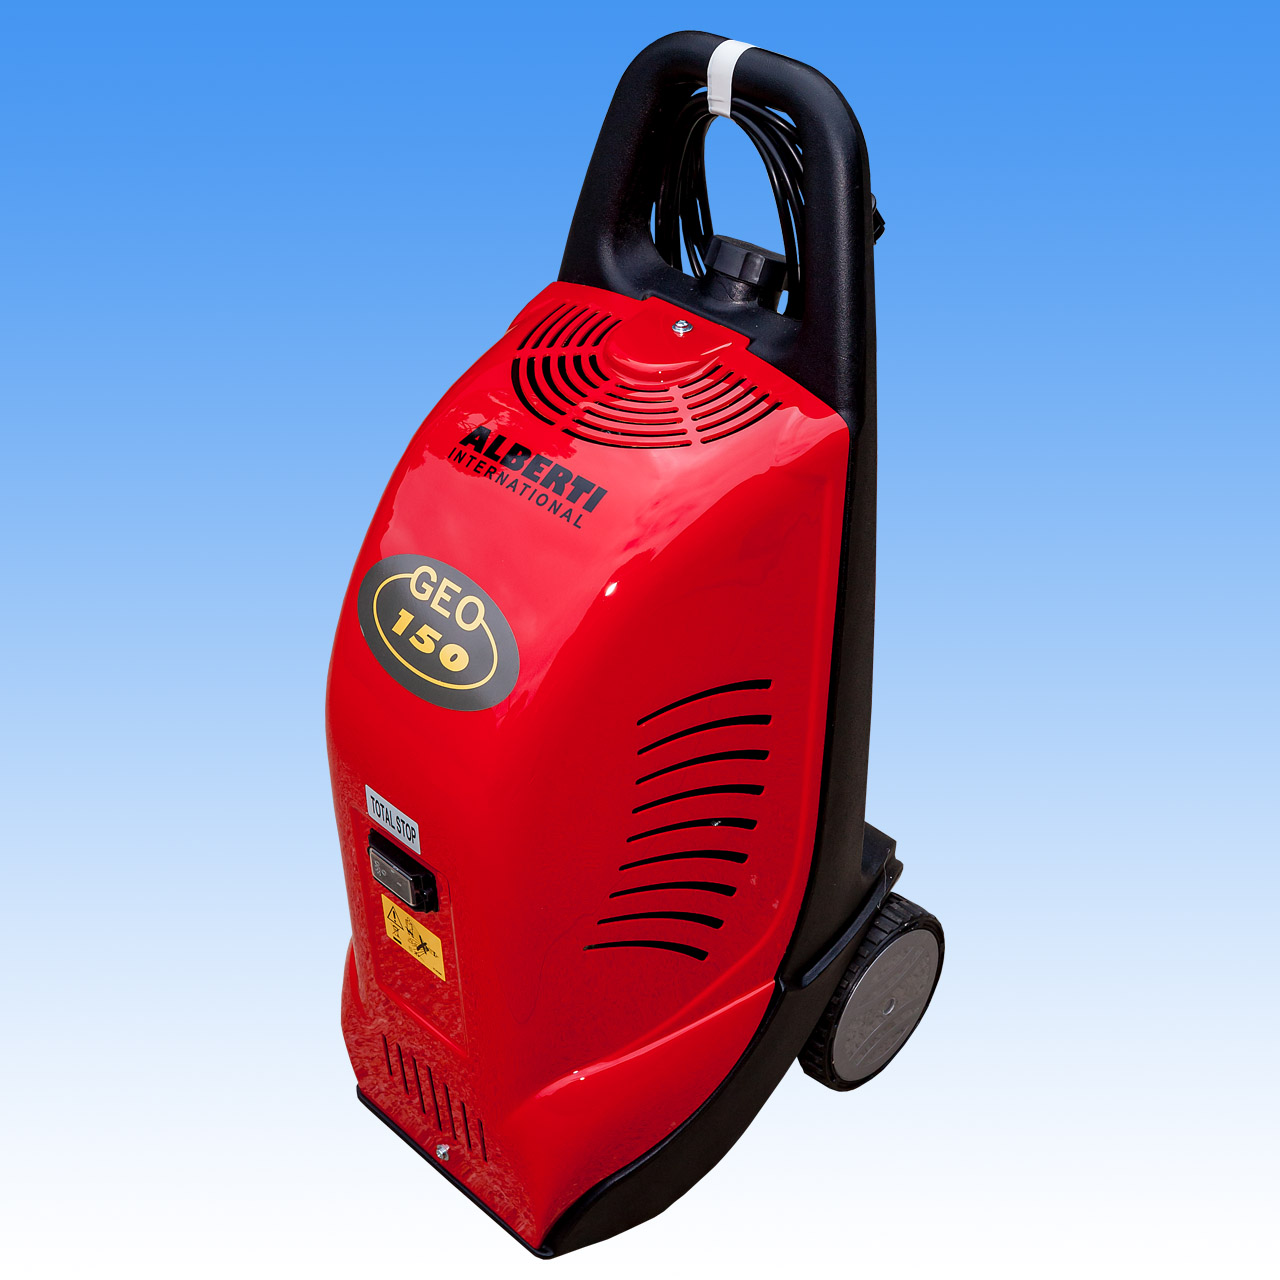 Alberti Geo 150 | 2000psi Electric COLD Water High Pressure Washer | Cleaner  ** SPECIAL PRICE - LIMITED TIME ONLY **